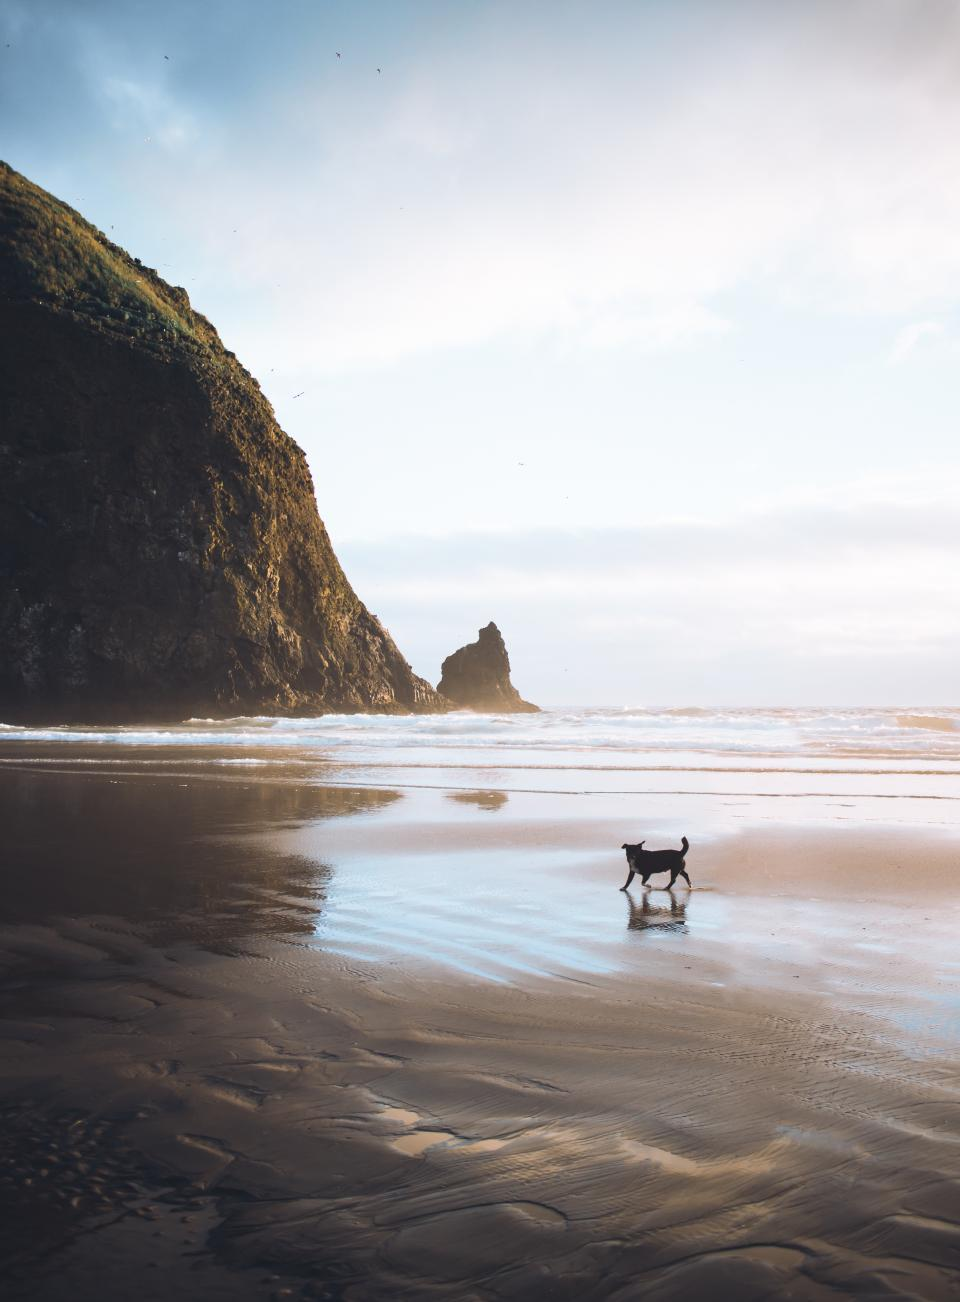 sea, ocean, water, waves, nature, beach, shore, coast, hill, mountain, sky, clouds, dog, pet, animal